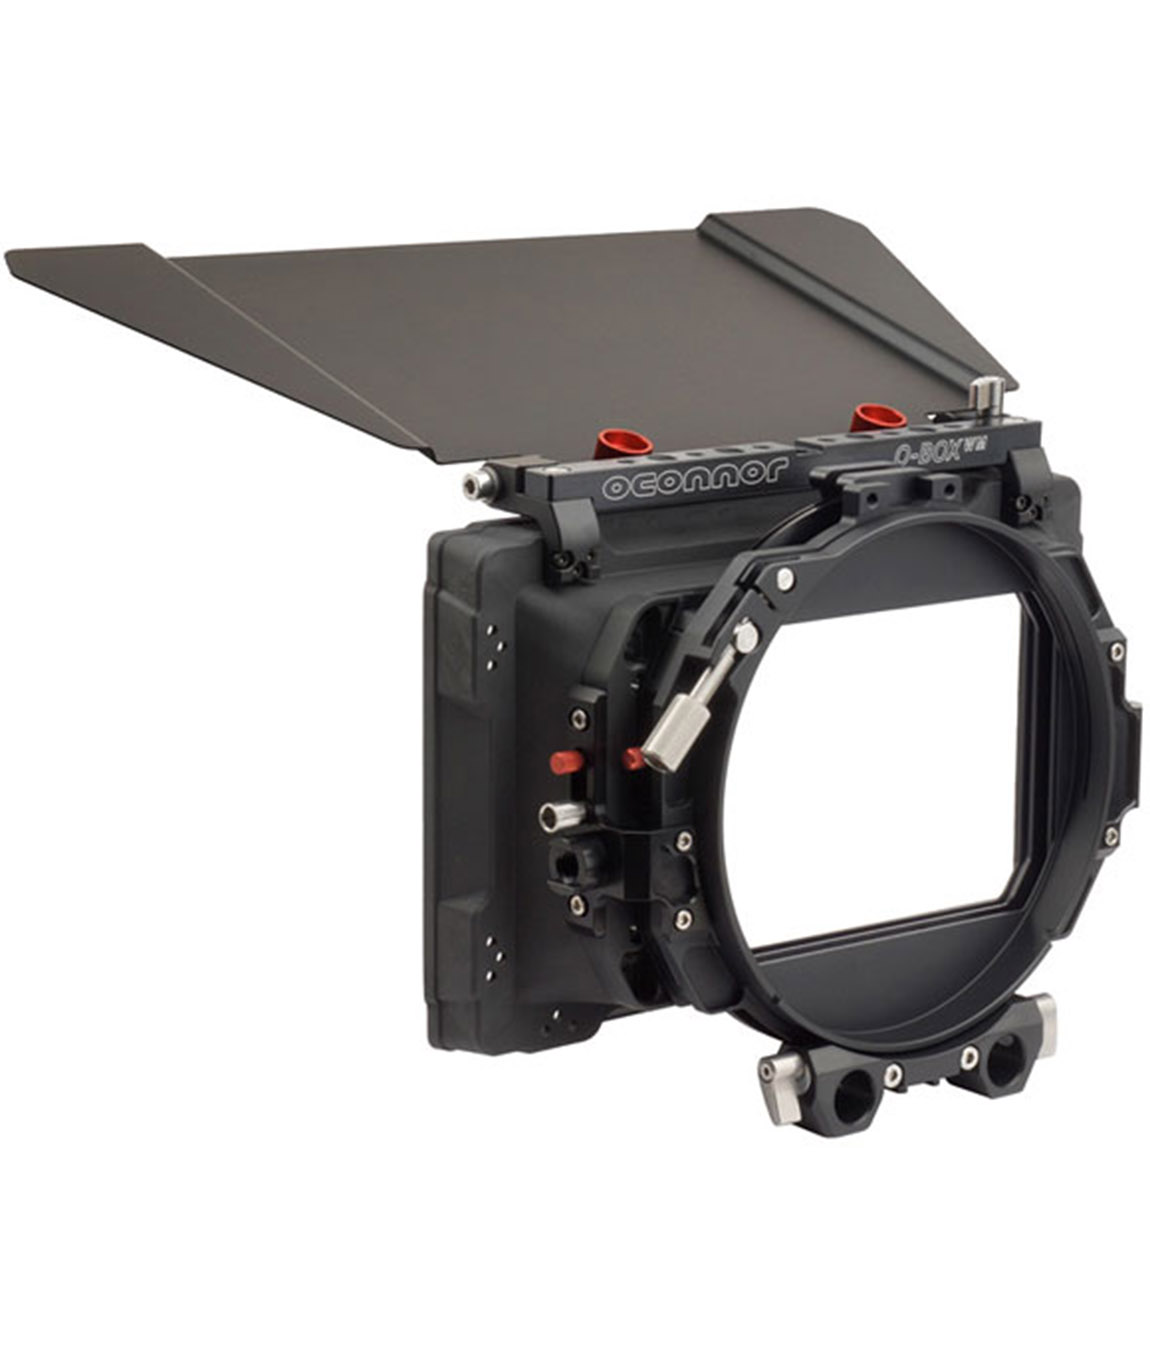 Rent/Hire O'Connor O-Box Rodded Matte Box in NYC